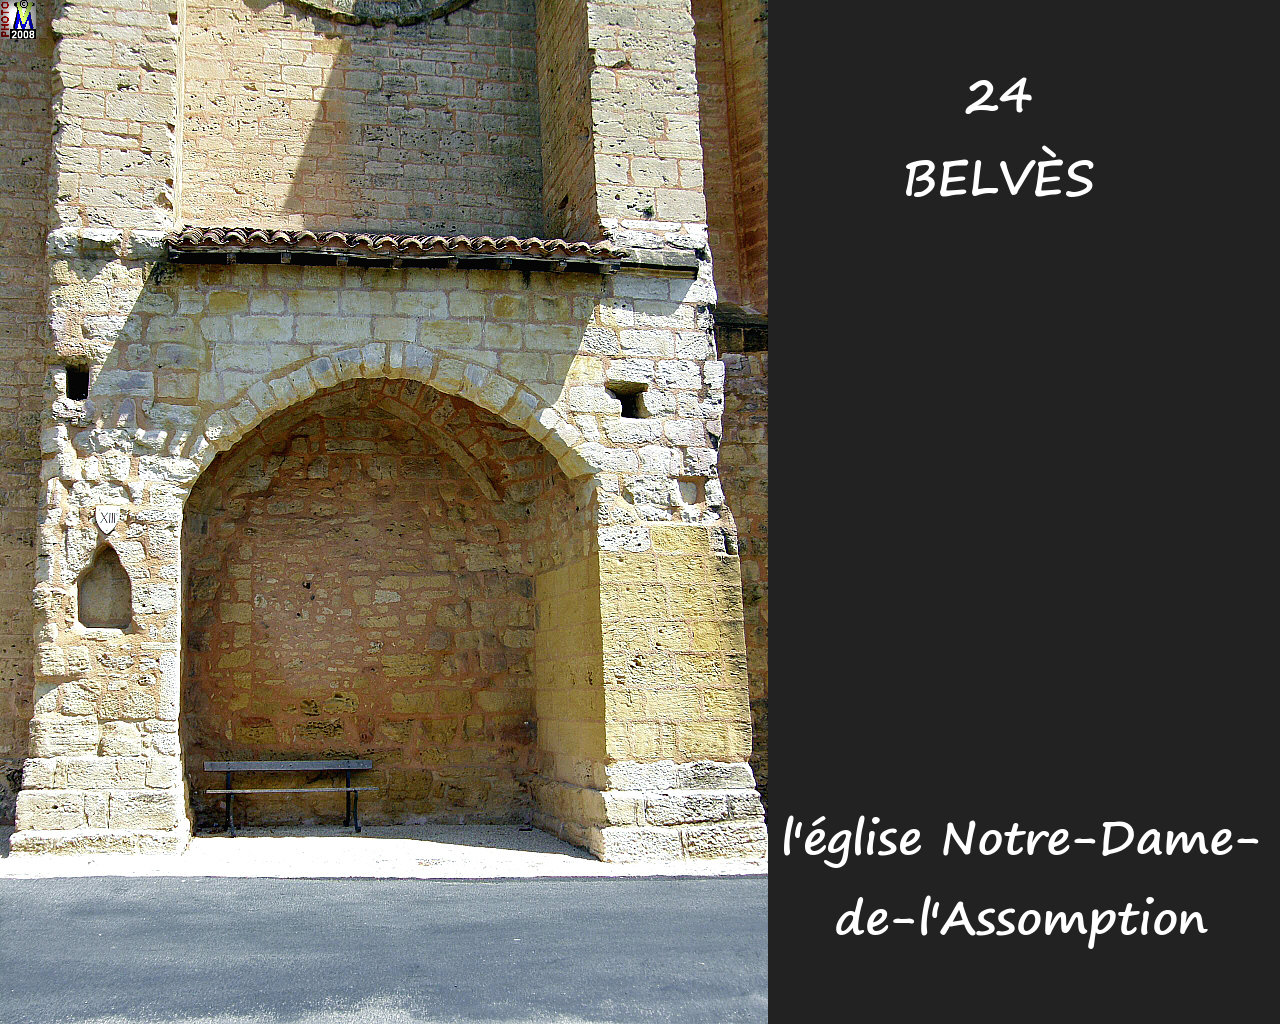 24BELVES_eglise_122.jpg